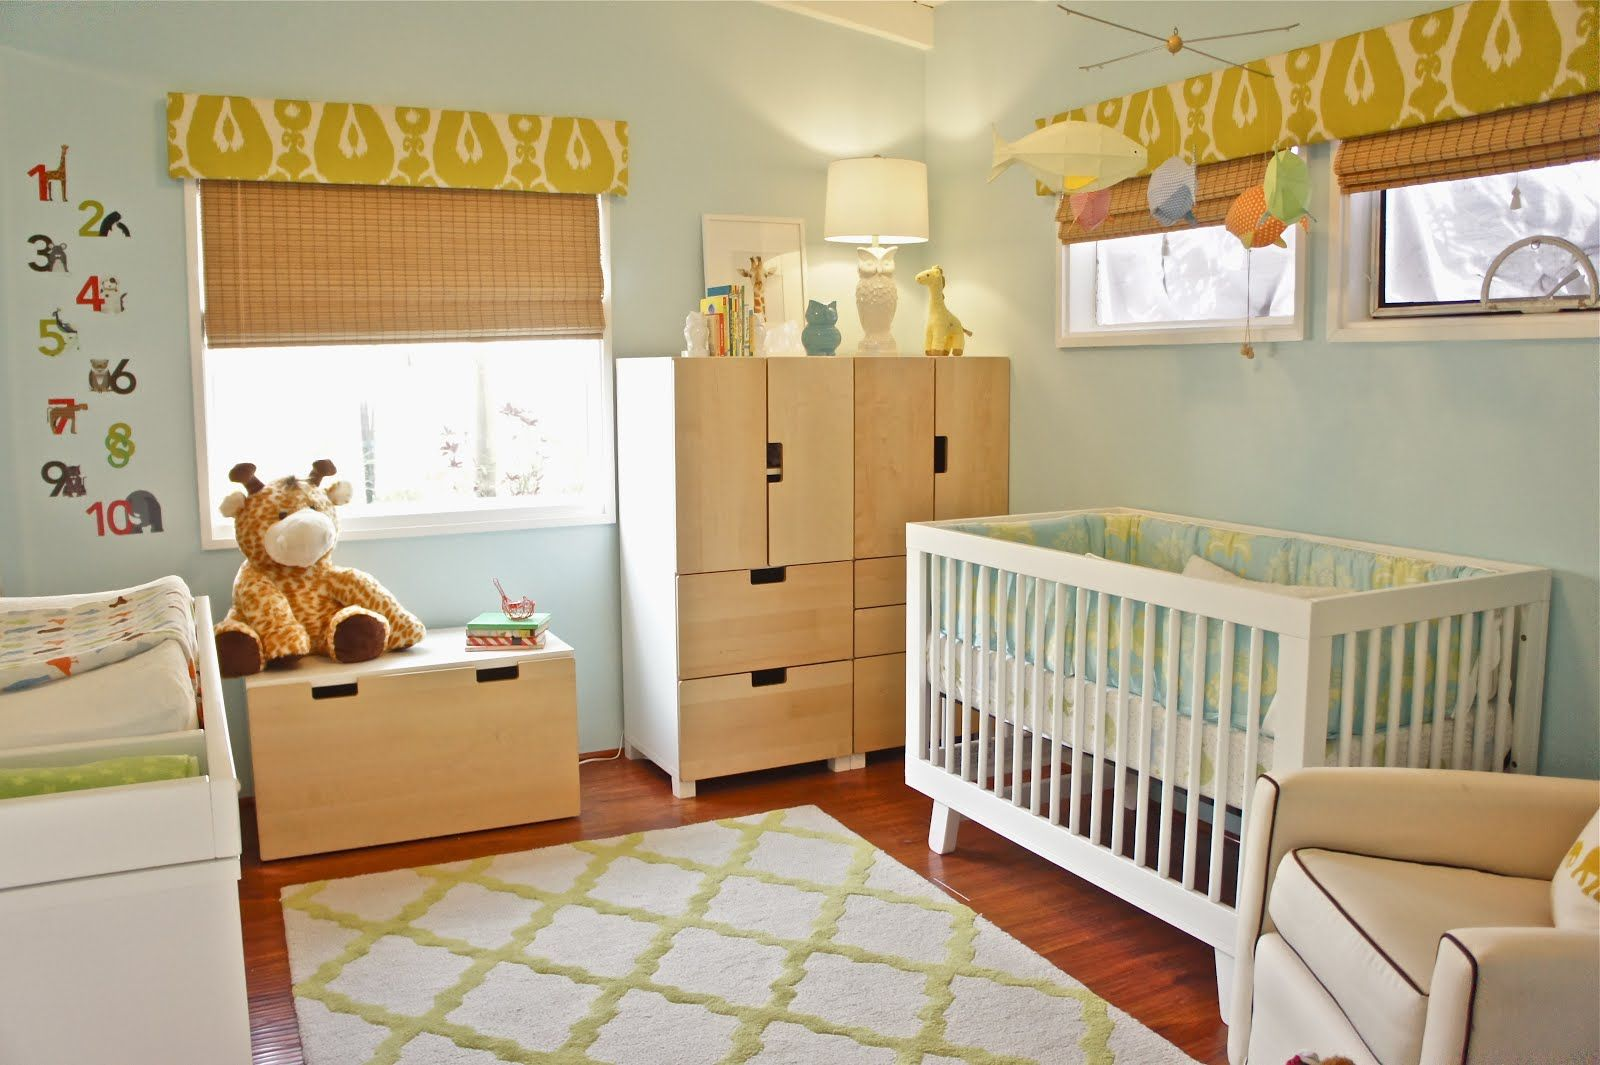 Ikea Baby Nursery Mix Of White And Blonde Wood Here We Go Baby Pinterest Ikea Baby